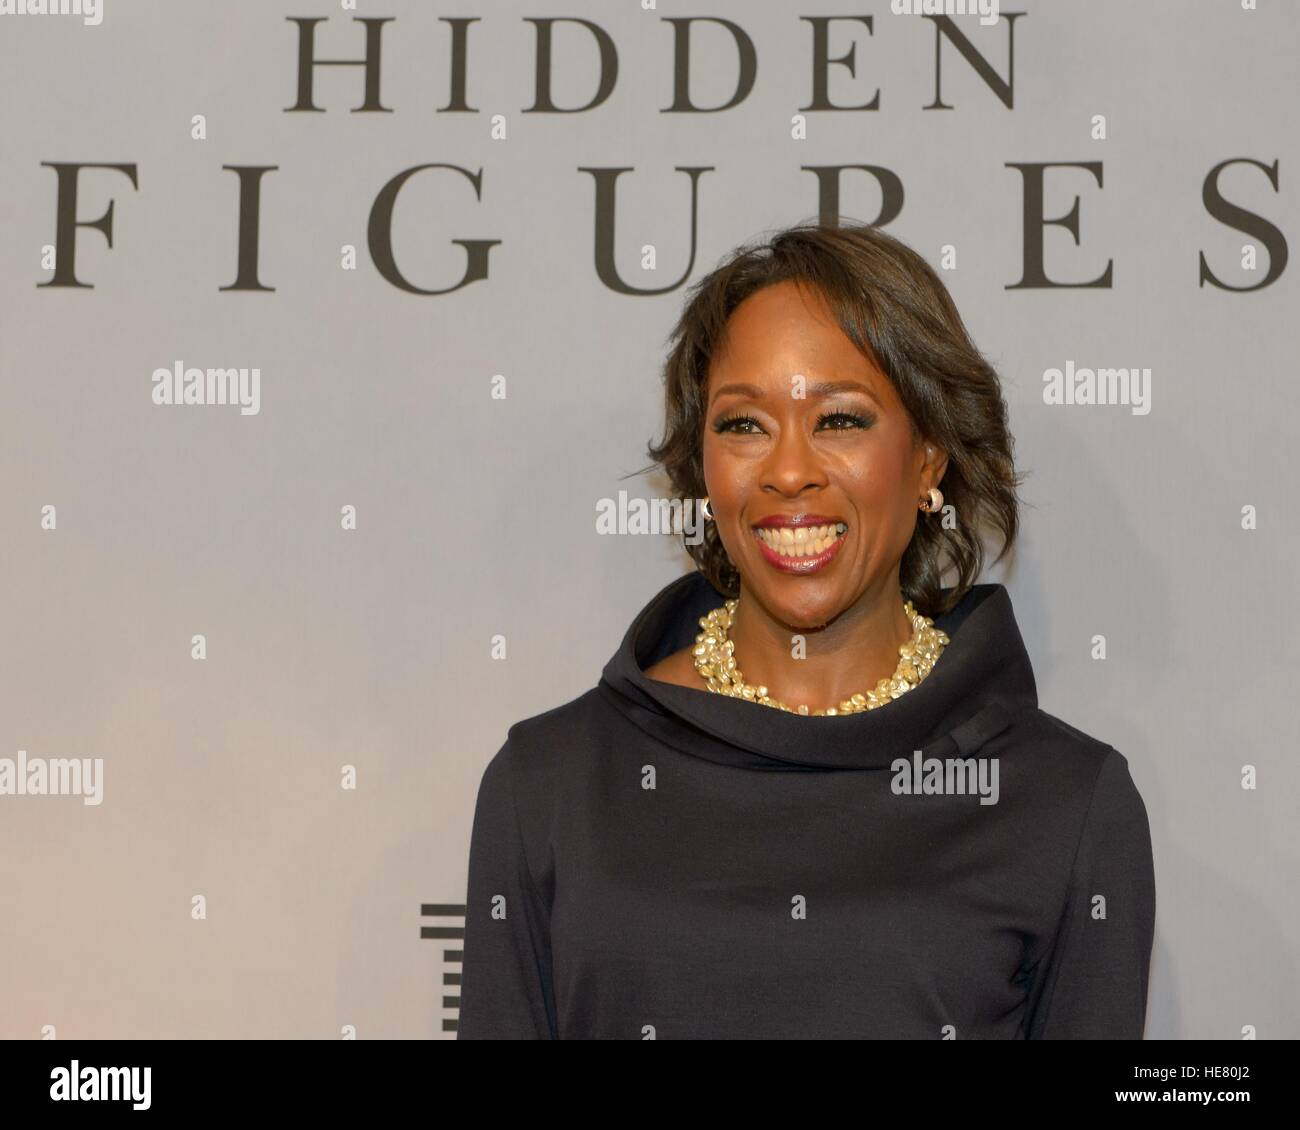 Author Margot Lee Shetterly walks the red carpet during the global celebration event for the film Hidden Figures - Stock Image